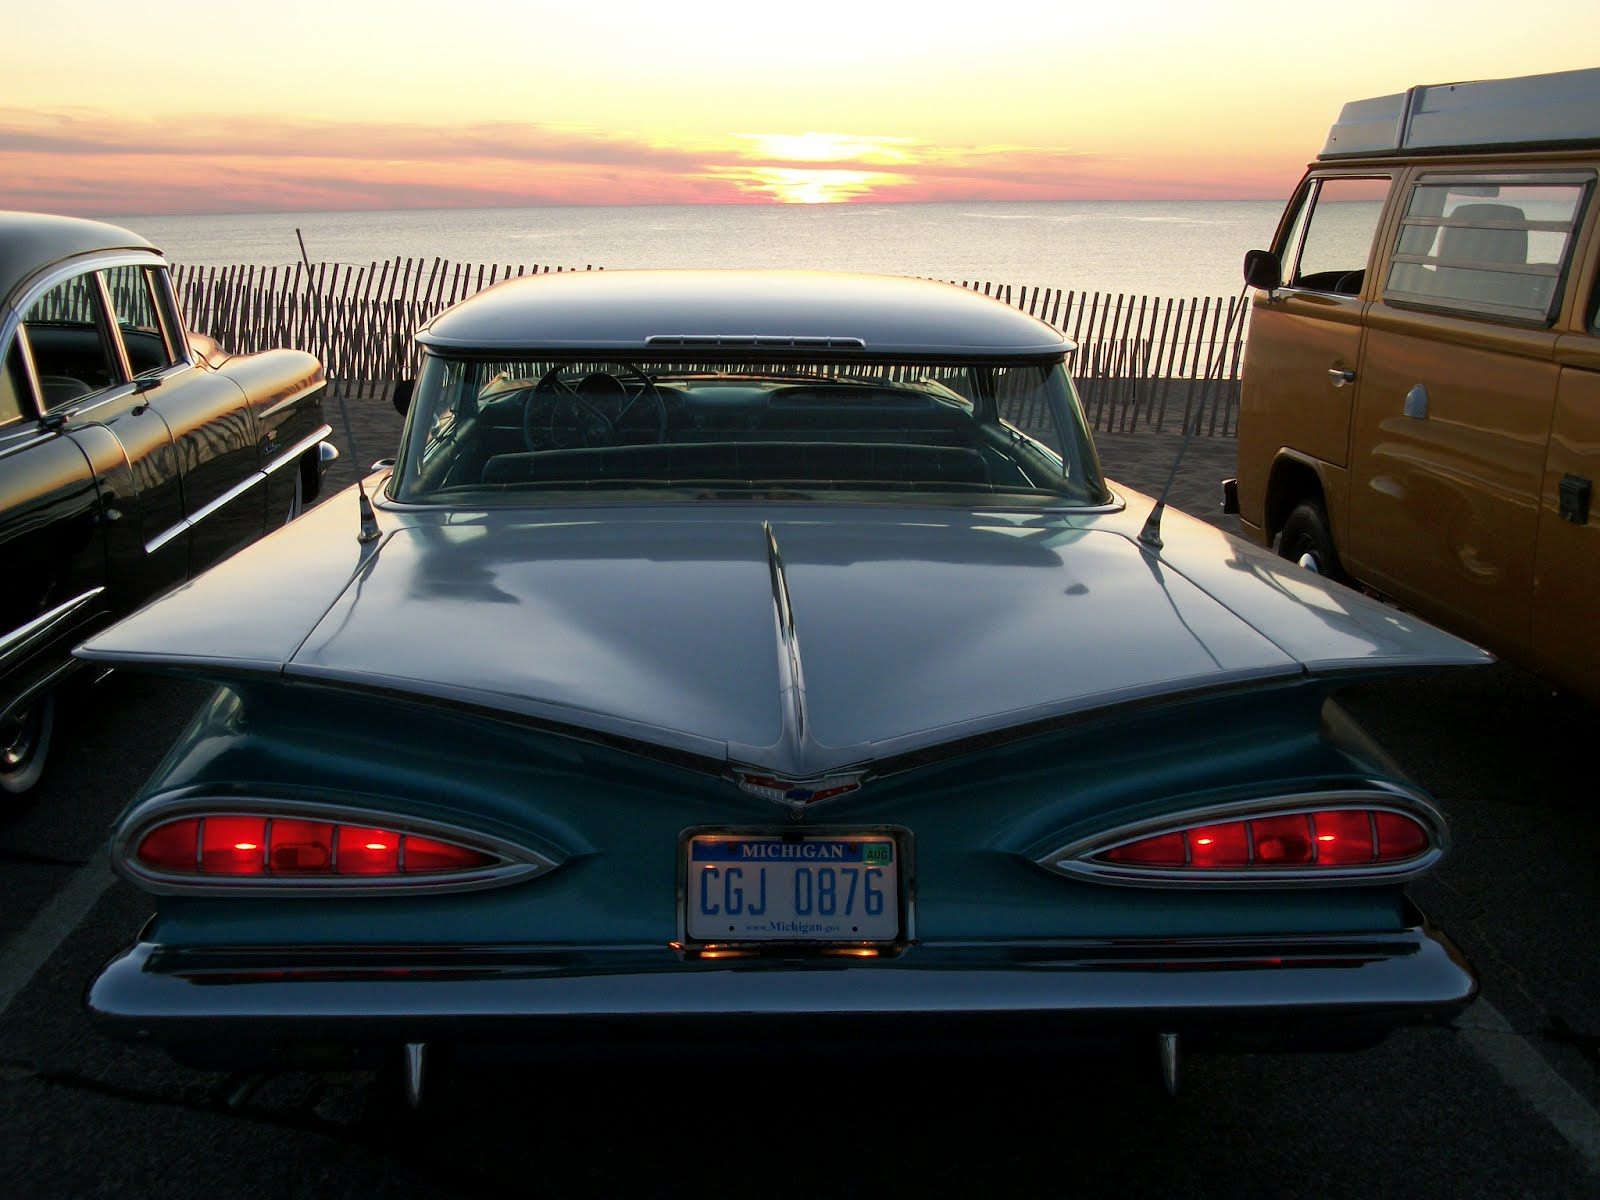 Photo of the week impala sunset the images keep flowing over at the palm springs automobilist